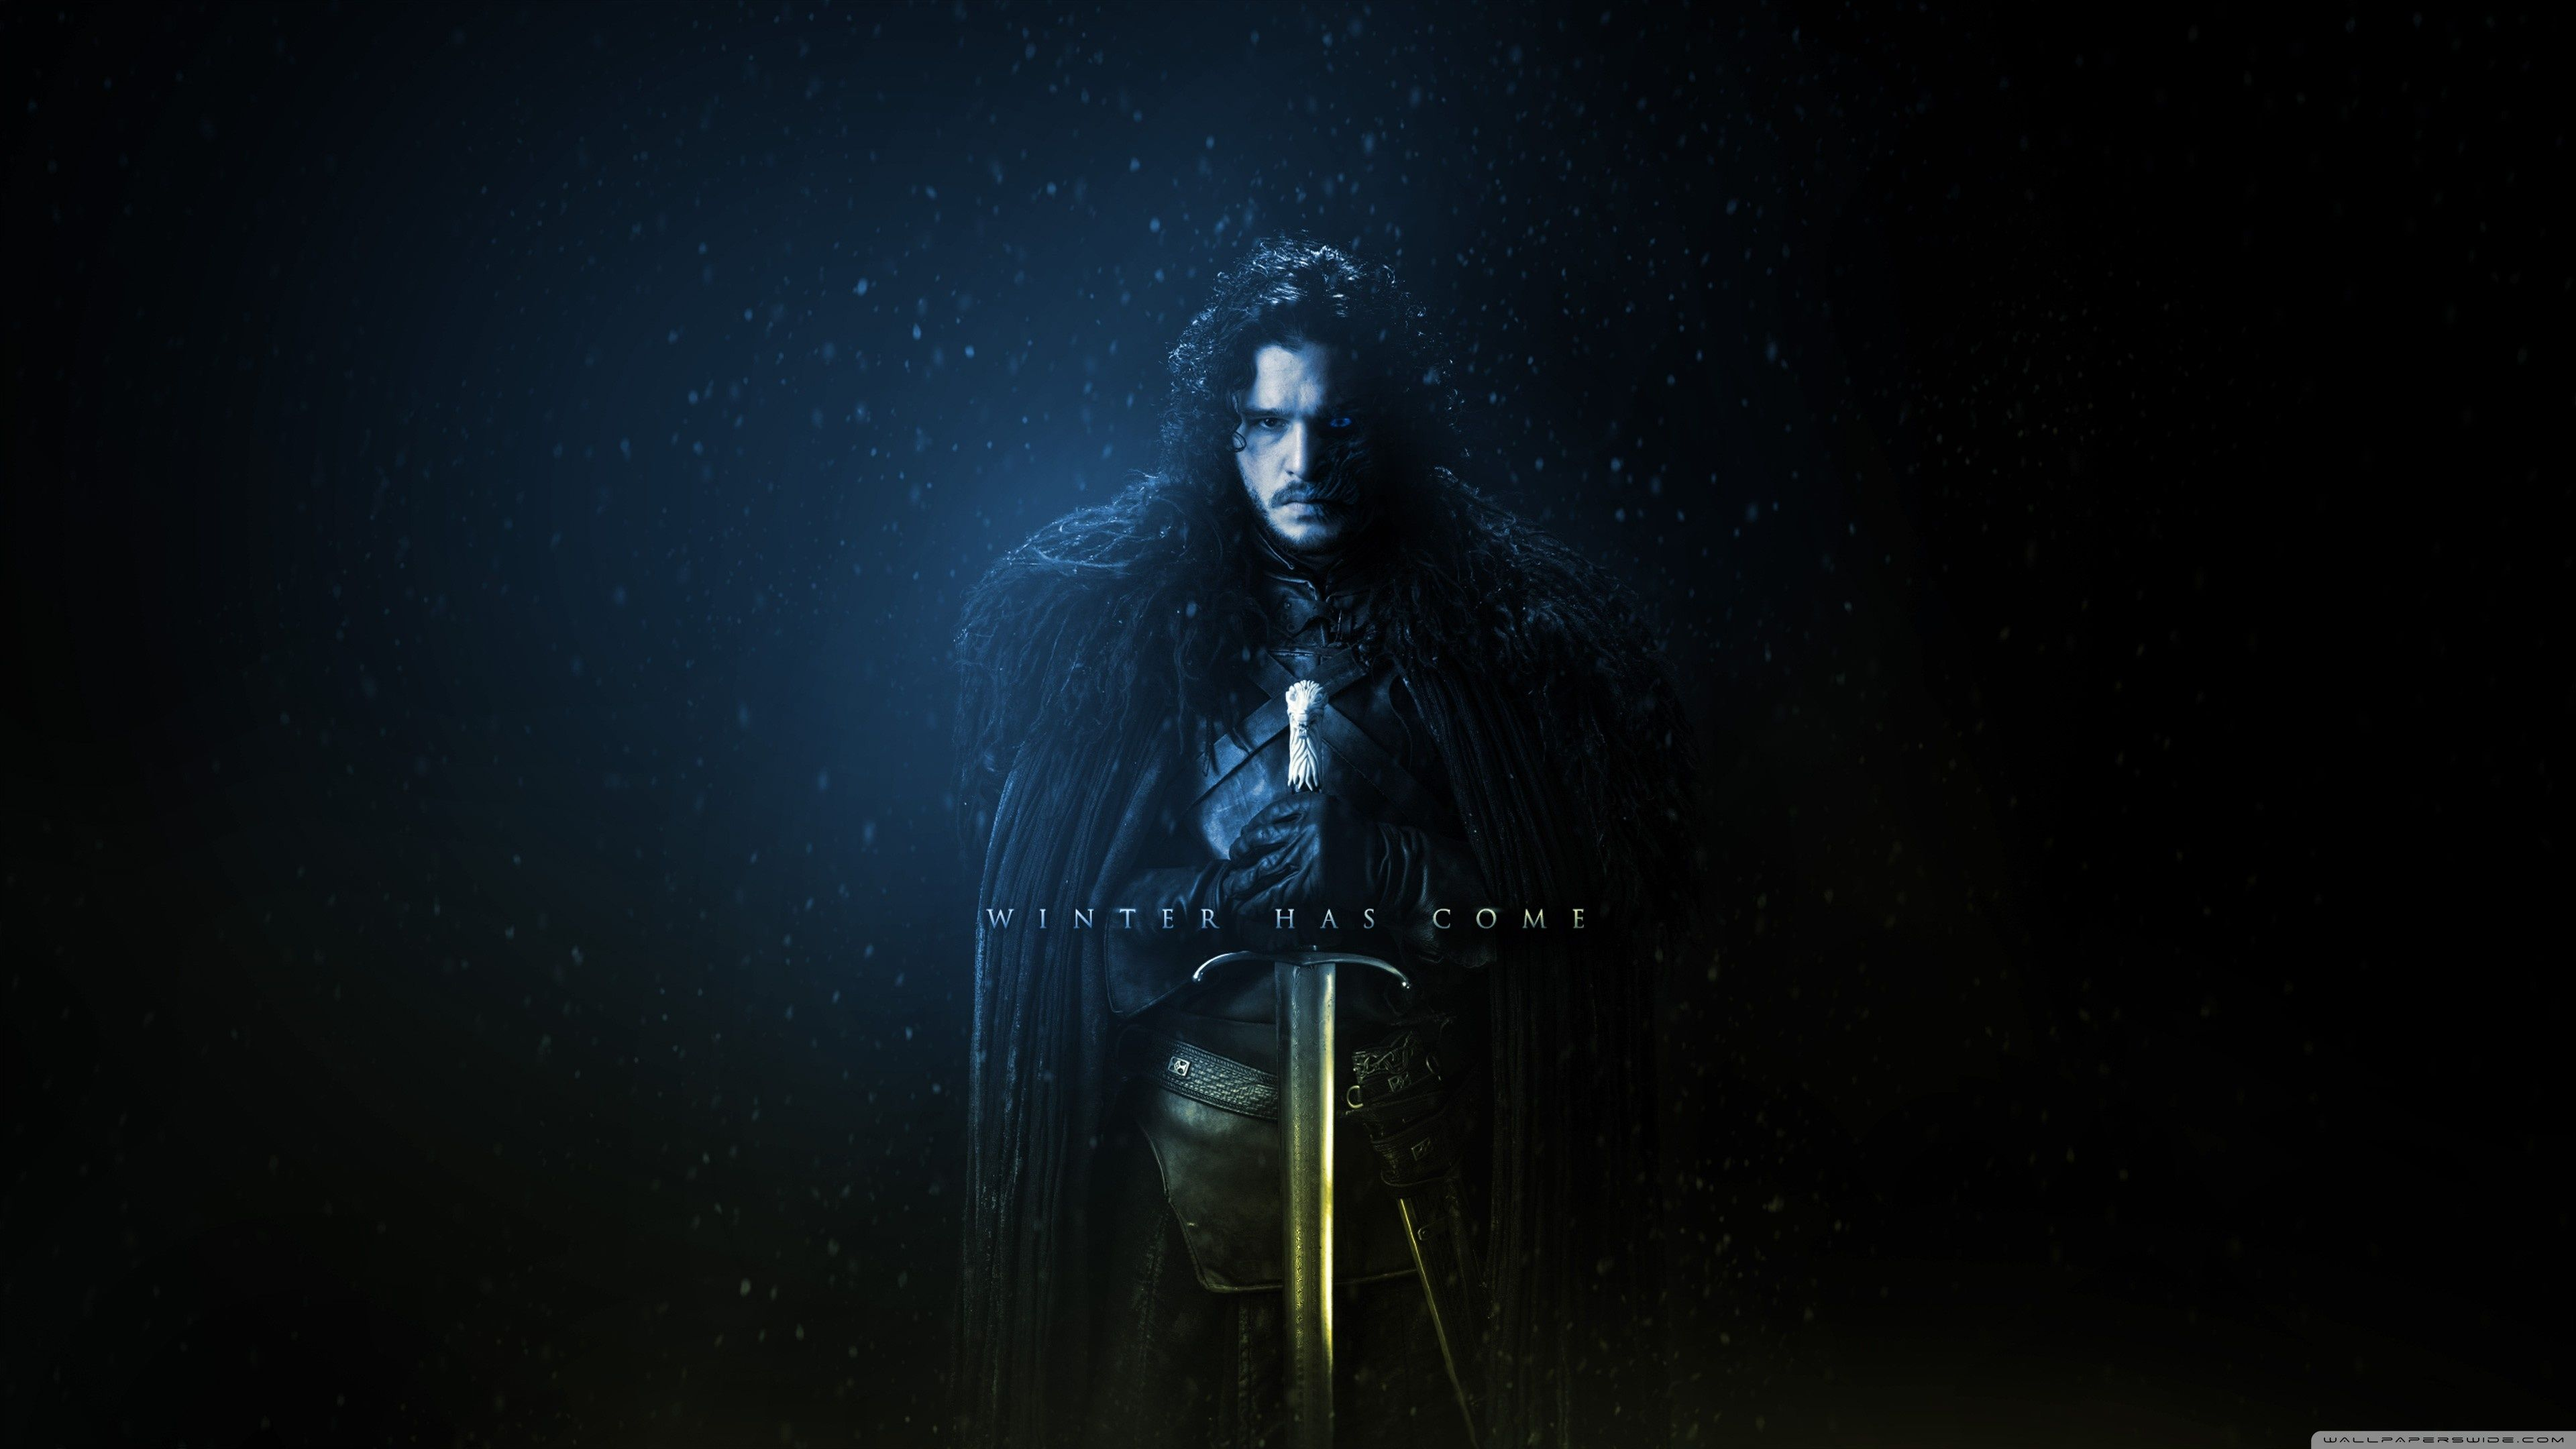 4K Game of Thrones Wallpapers - Top Free 4K Game of Thrones Backgrounds -  WallpaperAccess